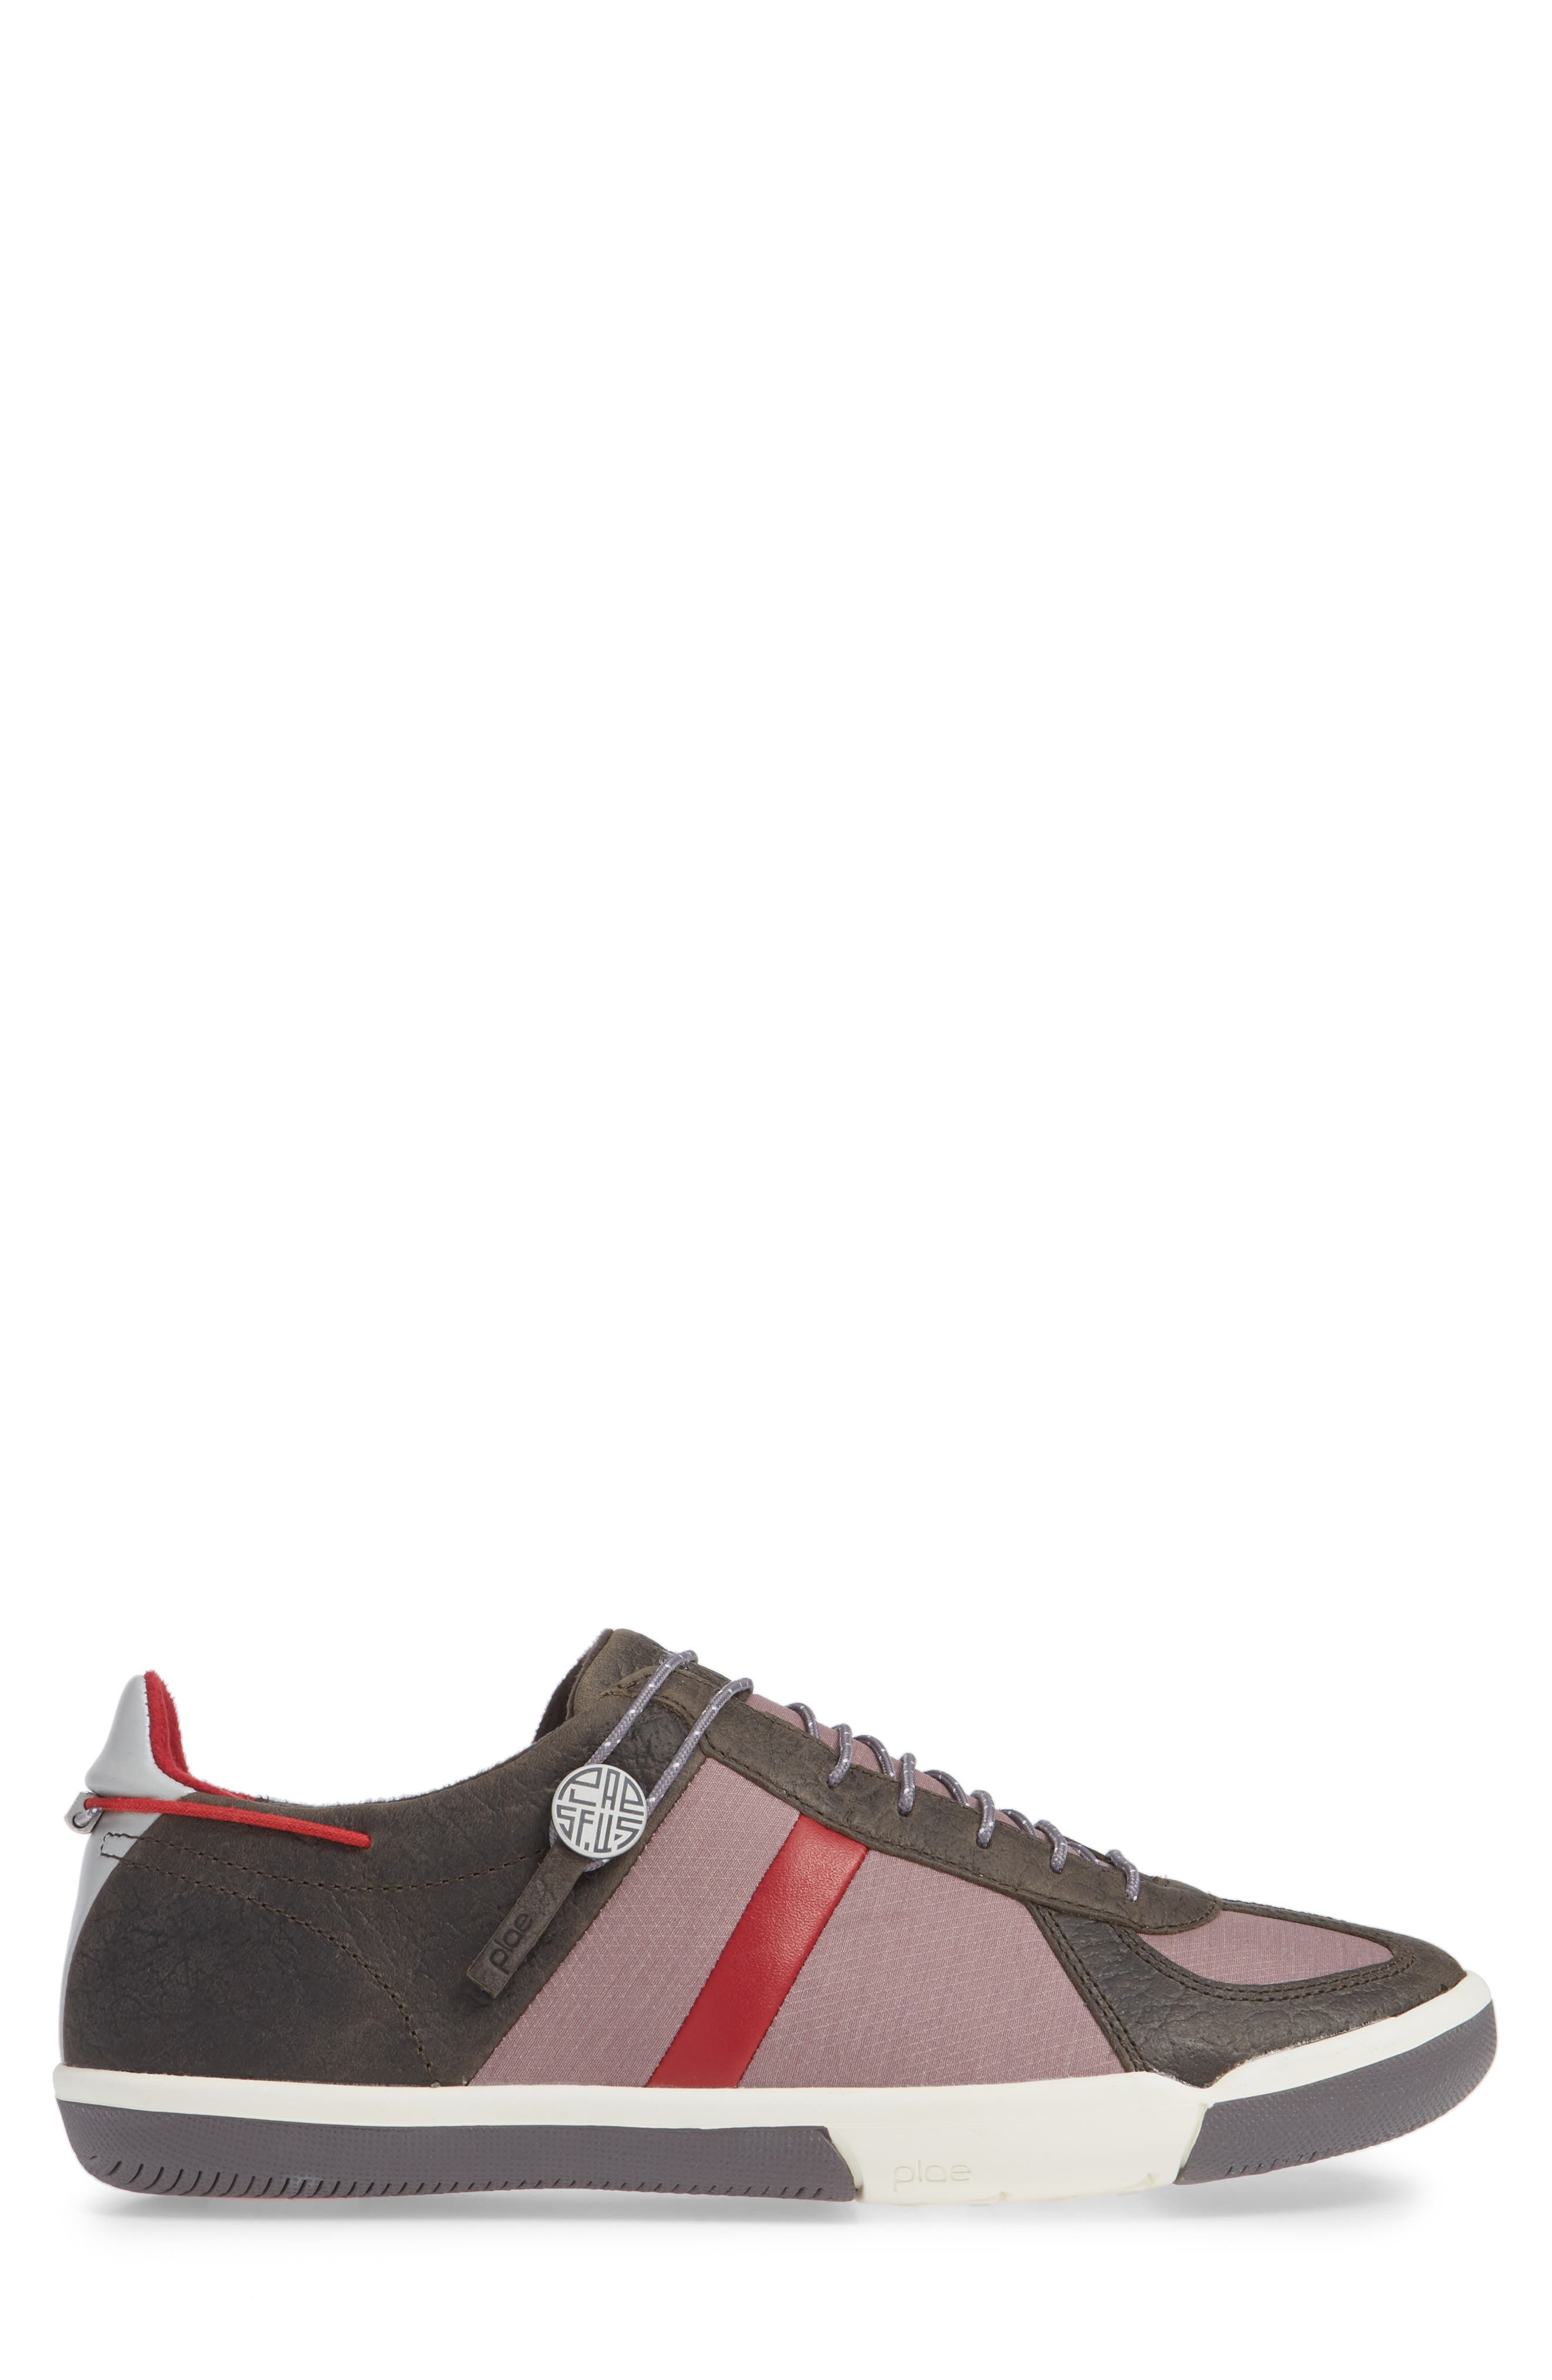 Butler Low-Top Sneaker,                             Alternate thumbnail 3, color,                             EMBER BROWN LEATHER